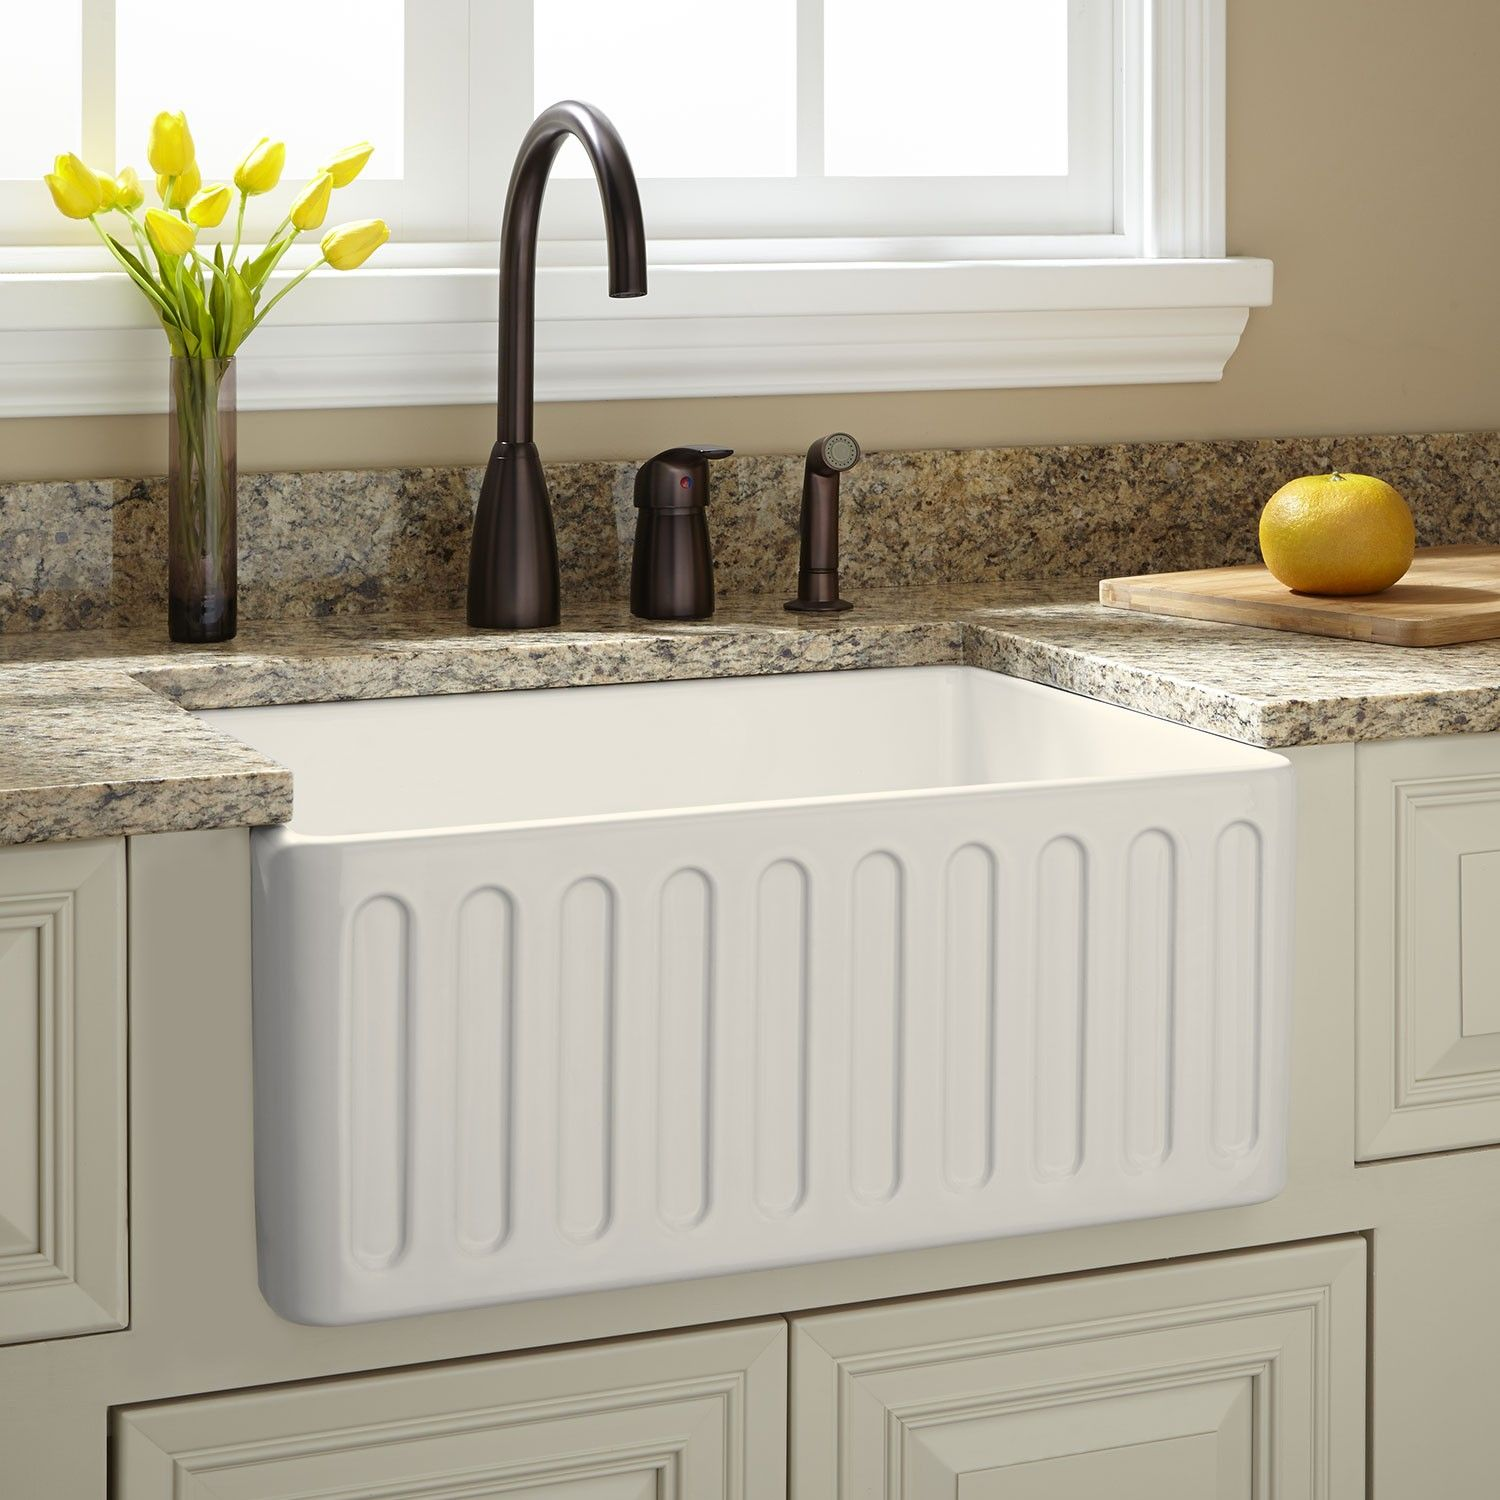 24 Northing Fireclay Farmhouse Sink Fluted Apron Biscuit Kitchens Fireclay Farmhouse Sink Sink Kitchen Hardware